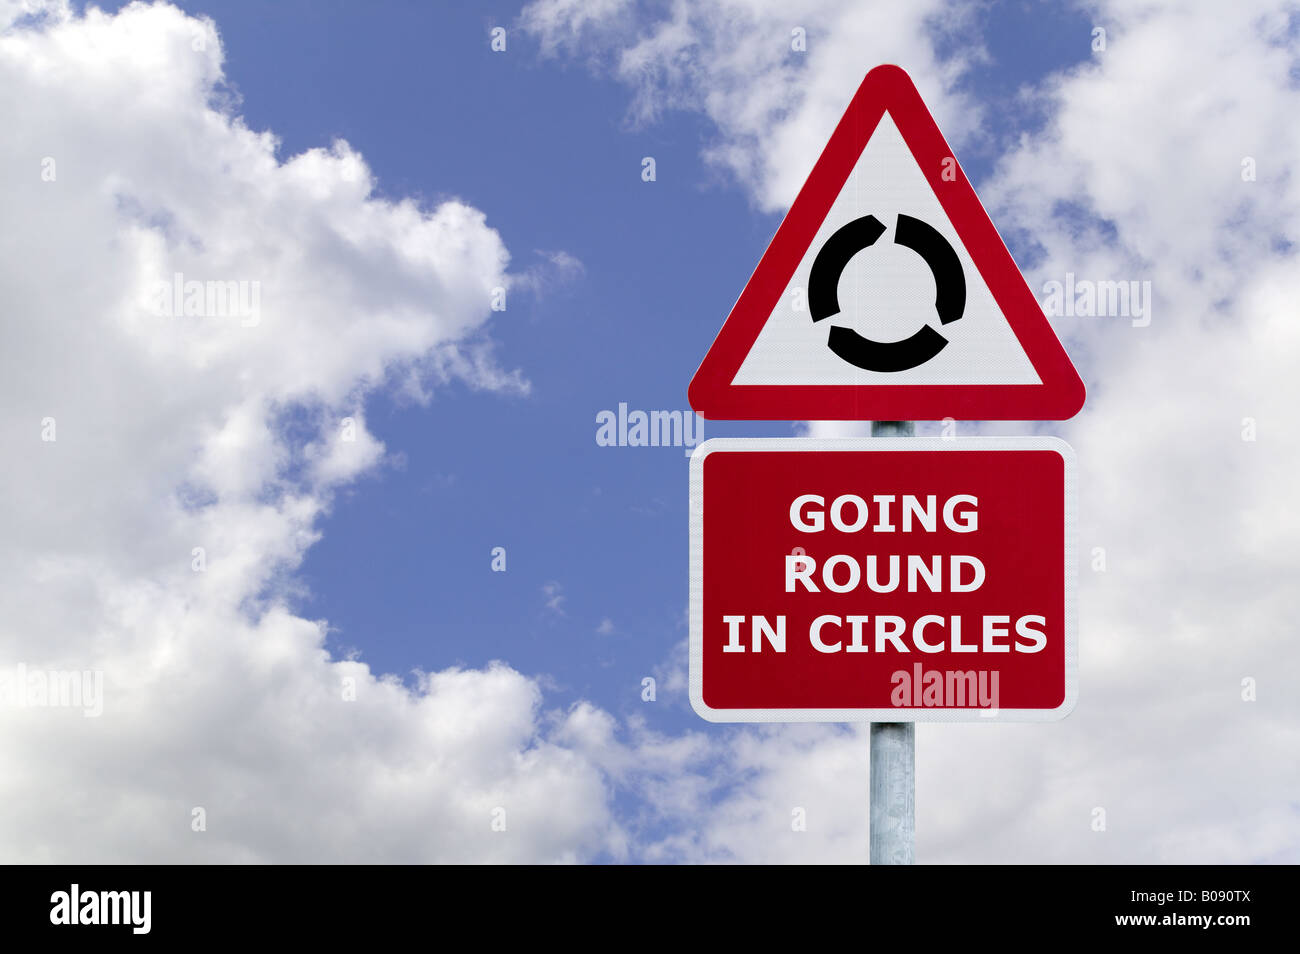 Concept image of the saying Going round in Circles signpost against a blue cloudy sky - Stock Image